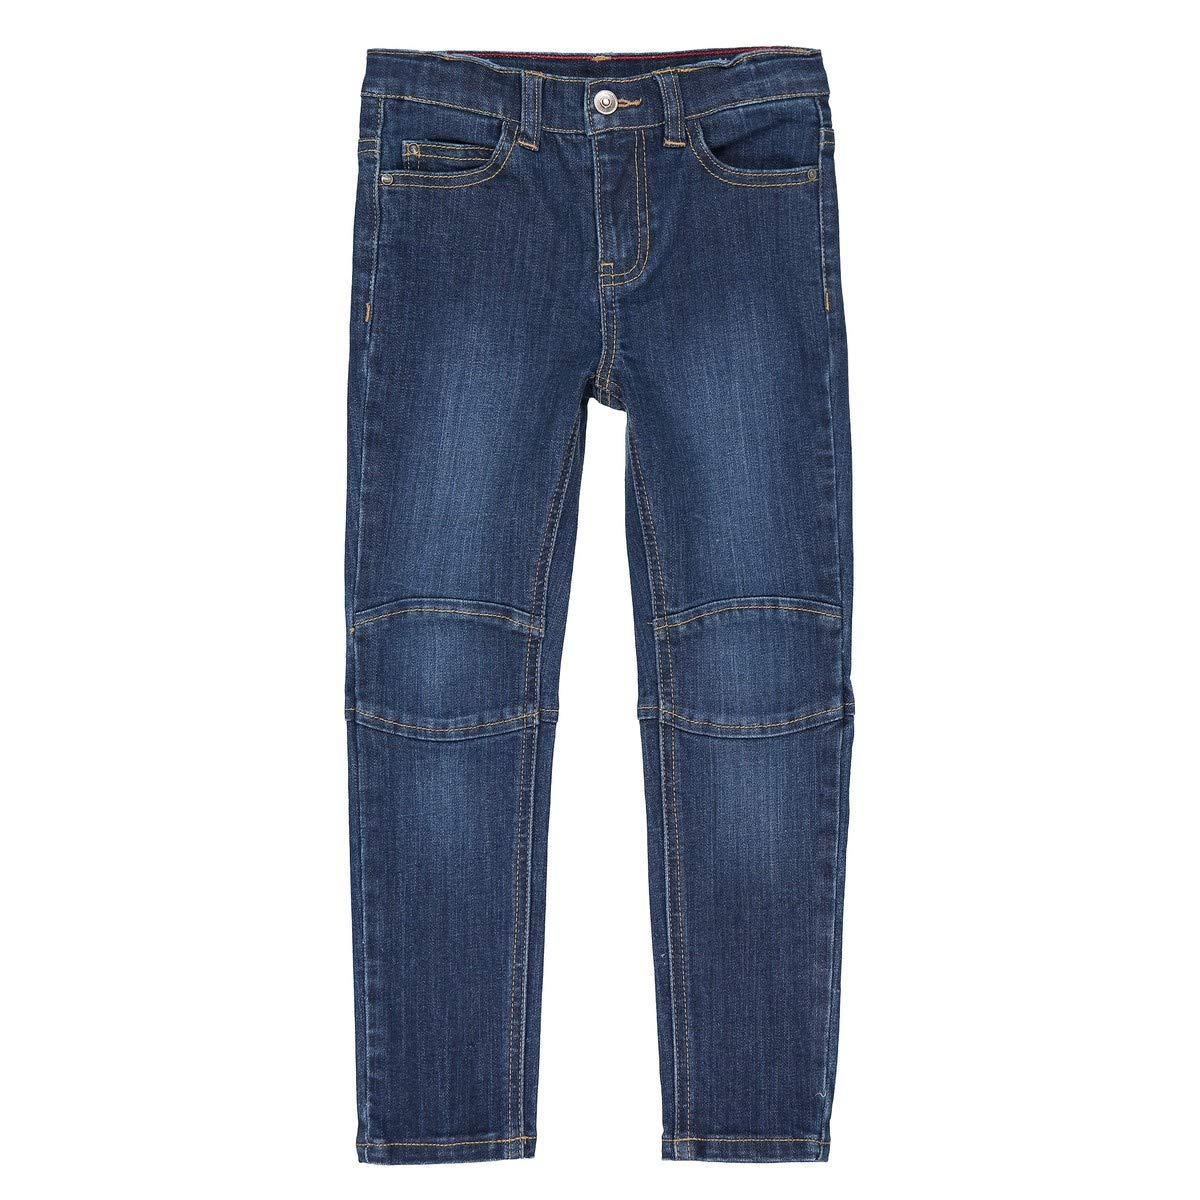 42 in. La Redoute Collections Big Boys Super Tough Slim Fit Jeans 3-12 Years Blue Size 5 Years